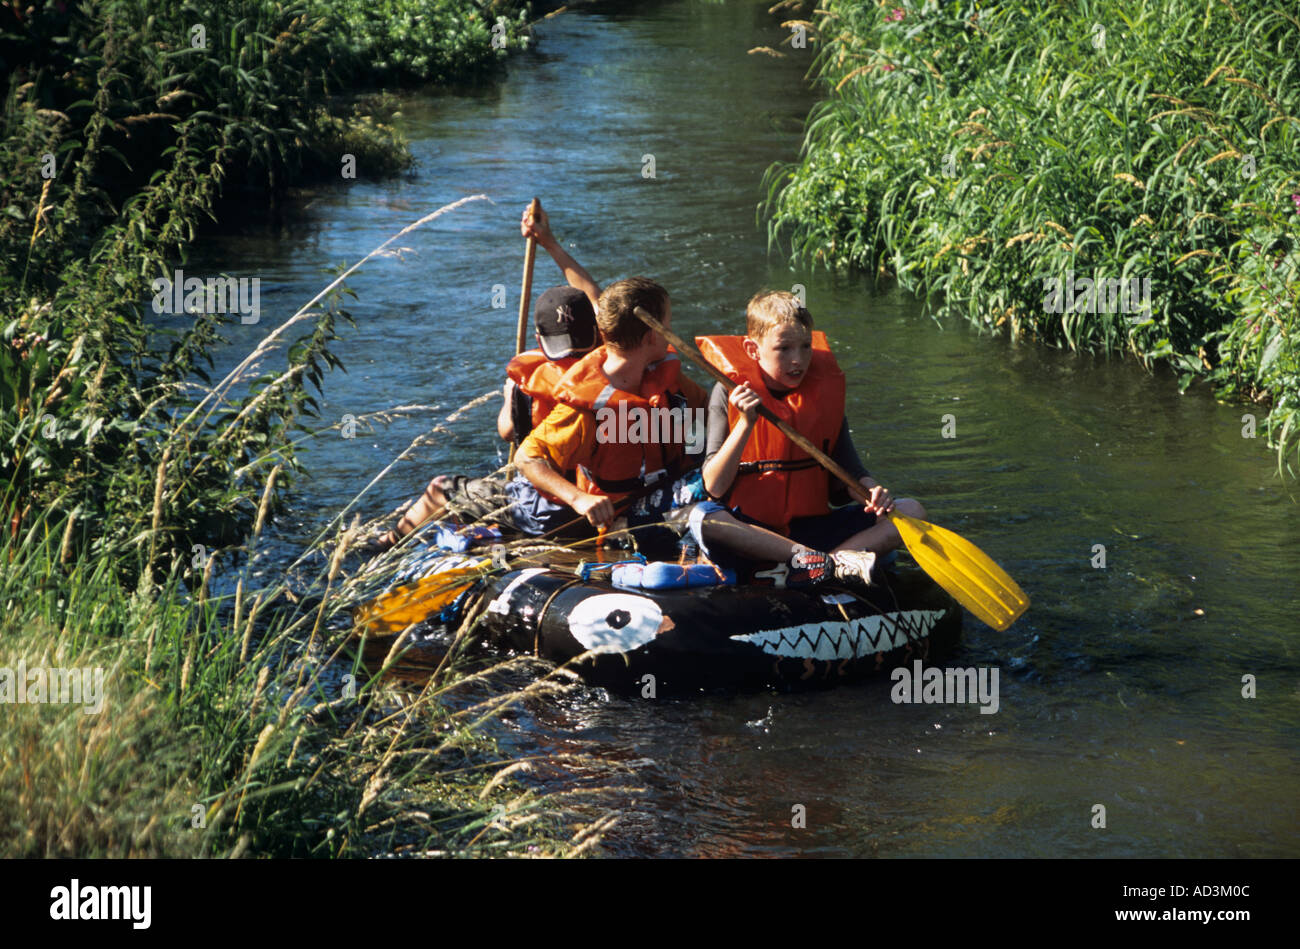 TILFORD SURREY England UK July Some of the raft race contestants paddling their raft down the River Wey - Stock Image